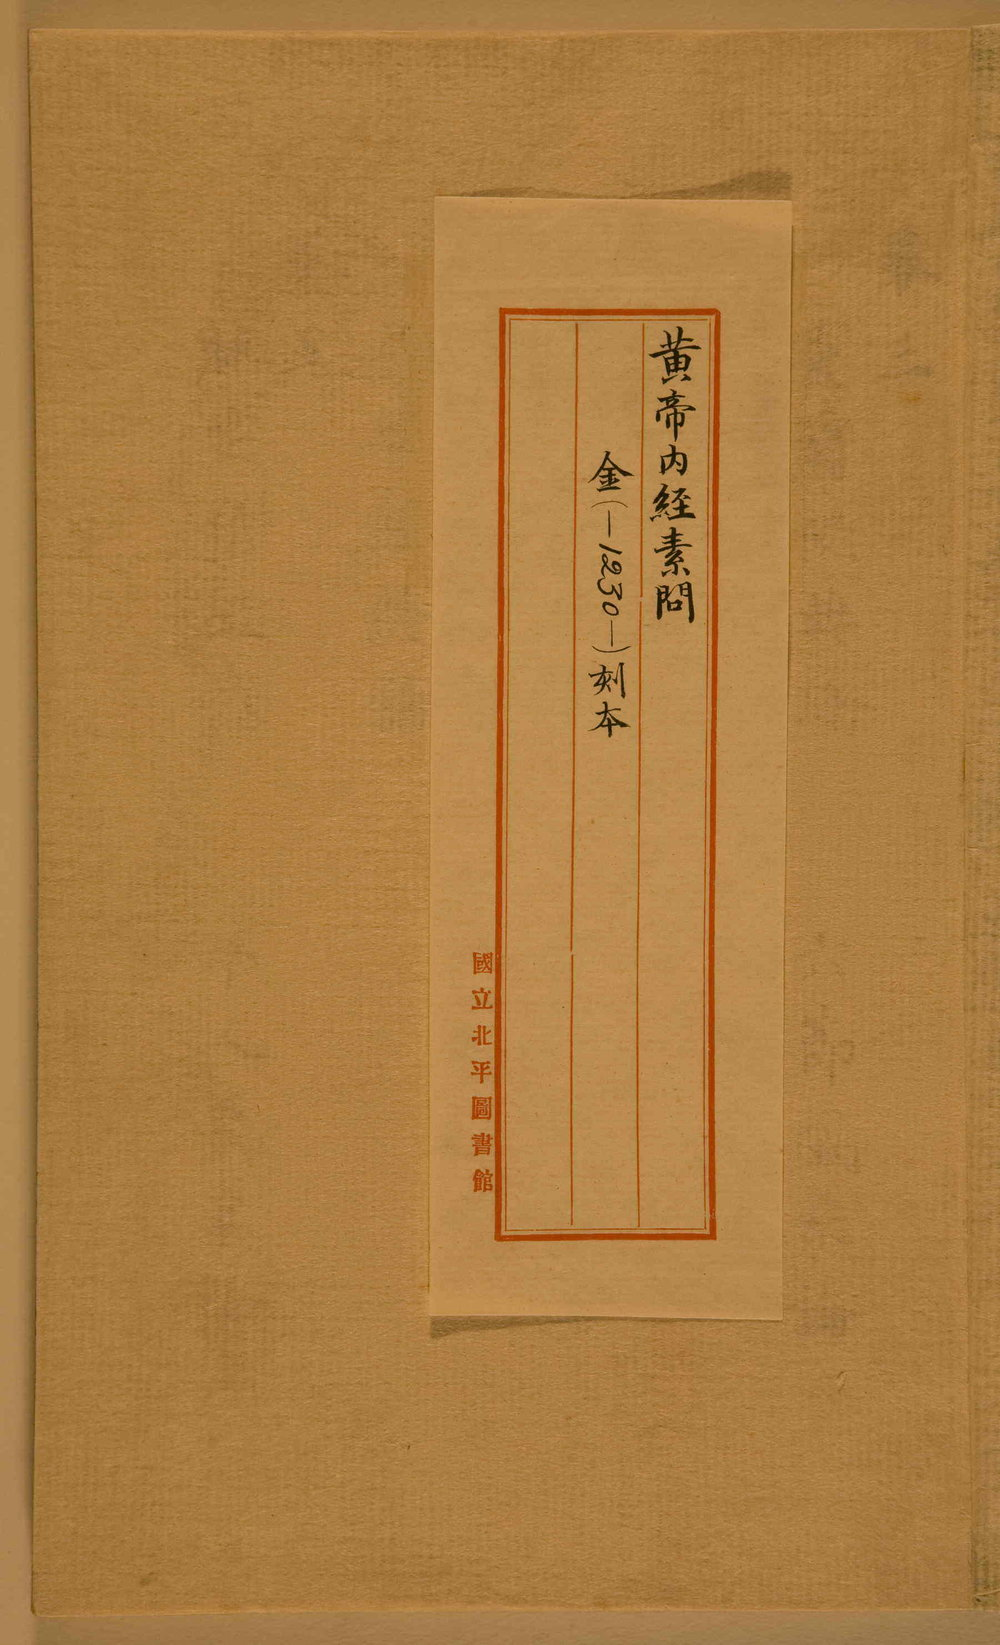 The first page of the Yellow Emperor's Classic of Internal Medicine.  Image:  National Library of China